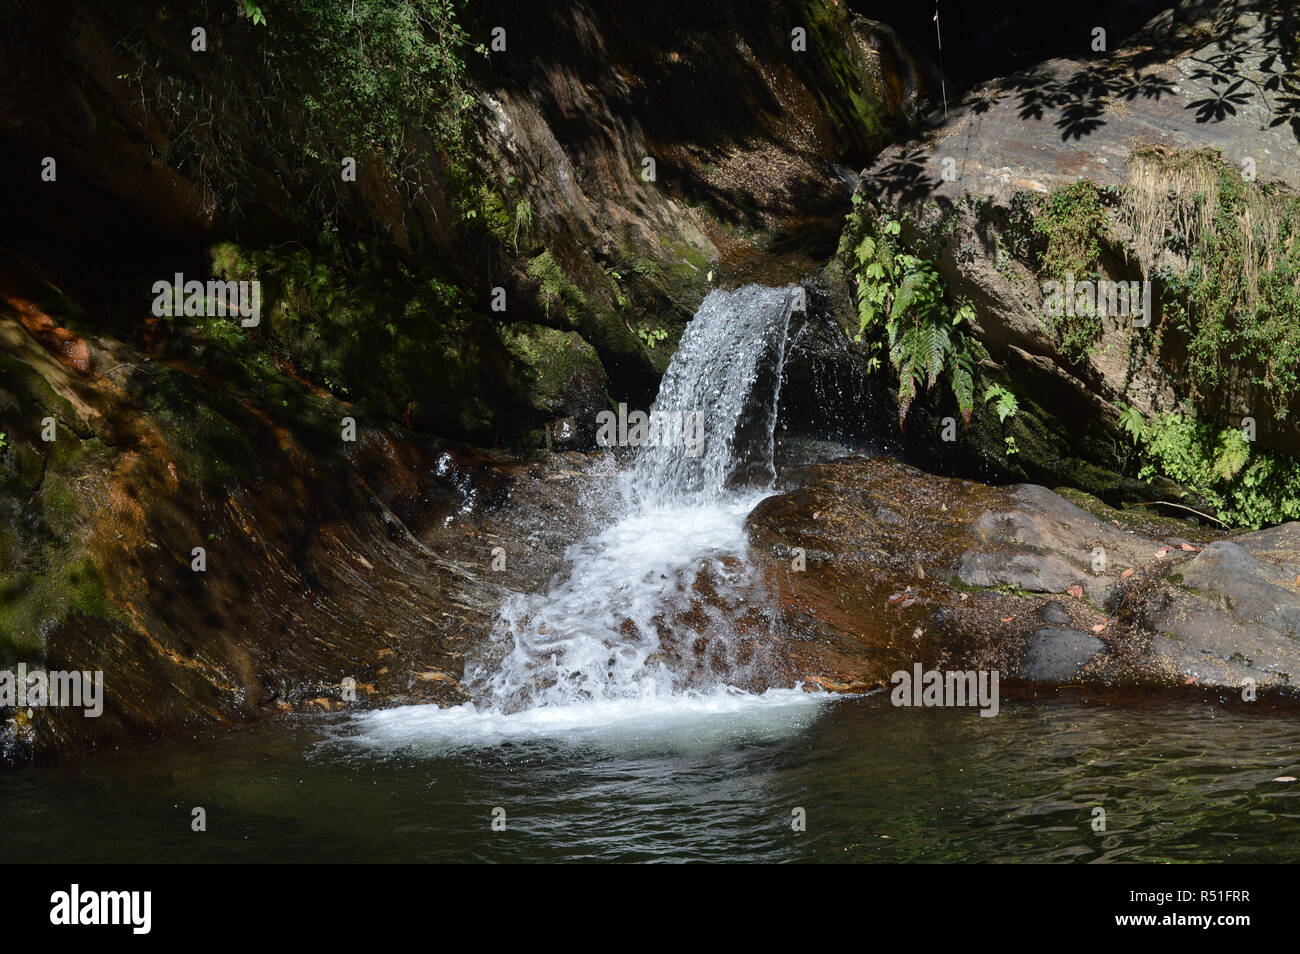 natural river falls, lakes , forests and eye catching landscapes in uttarakhand india gives calm and peace to soul. Stock Photo